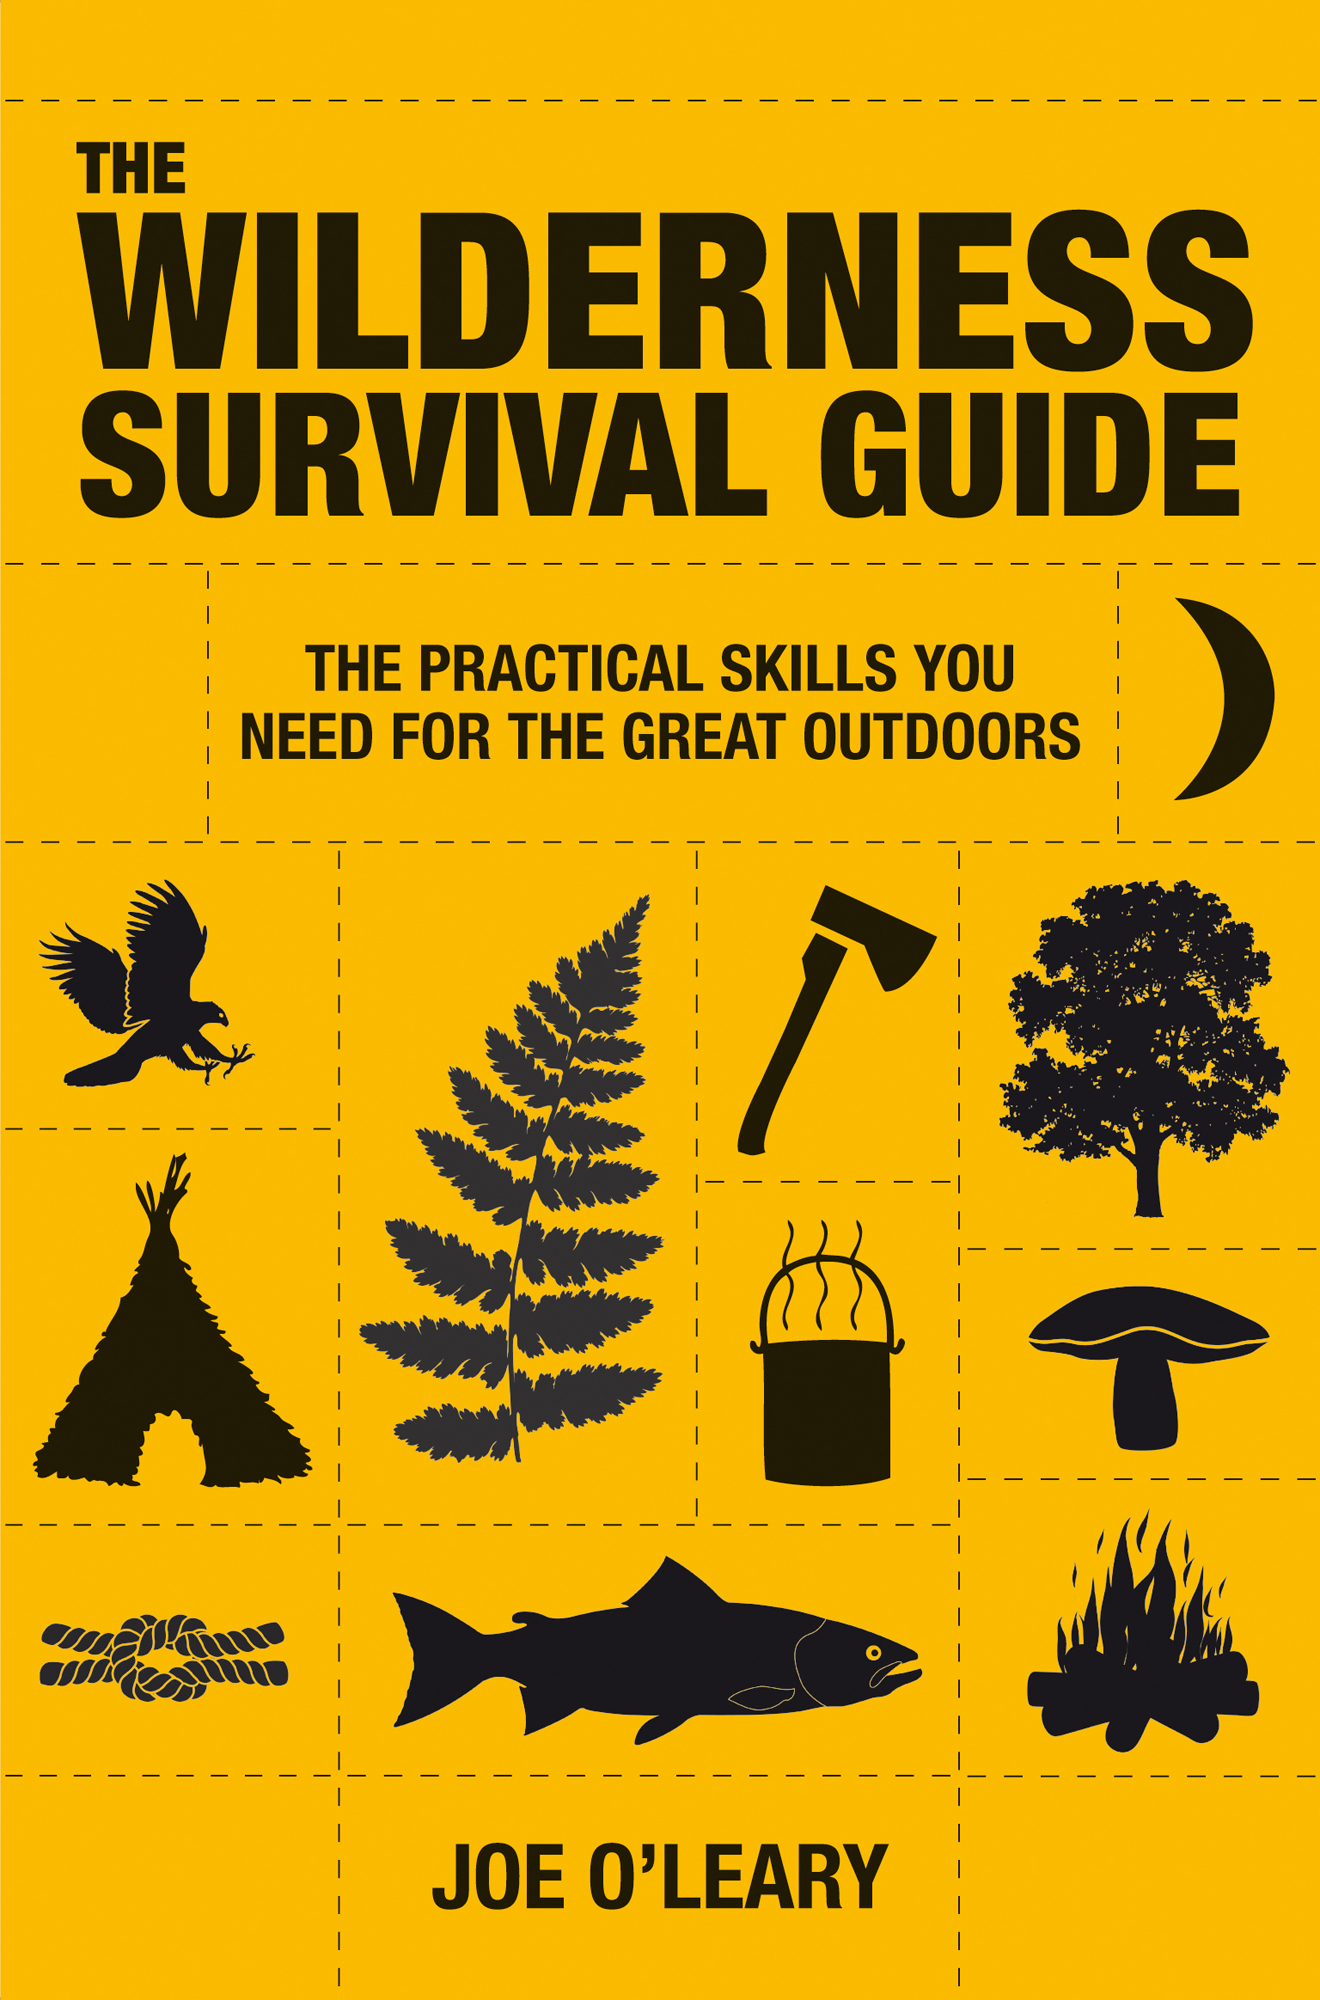 Wilderness Survival Guide By: Joe O'Leary